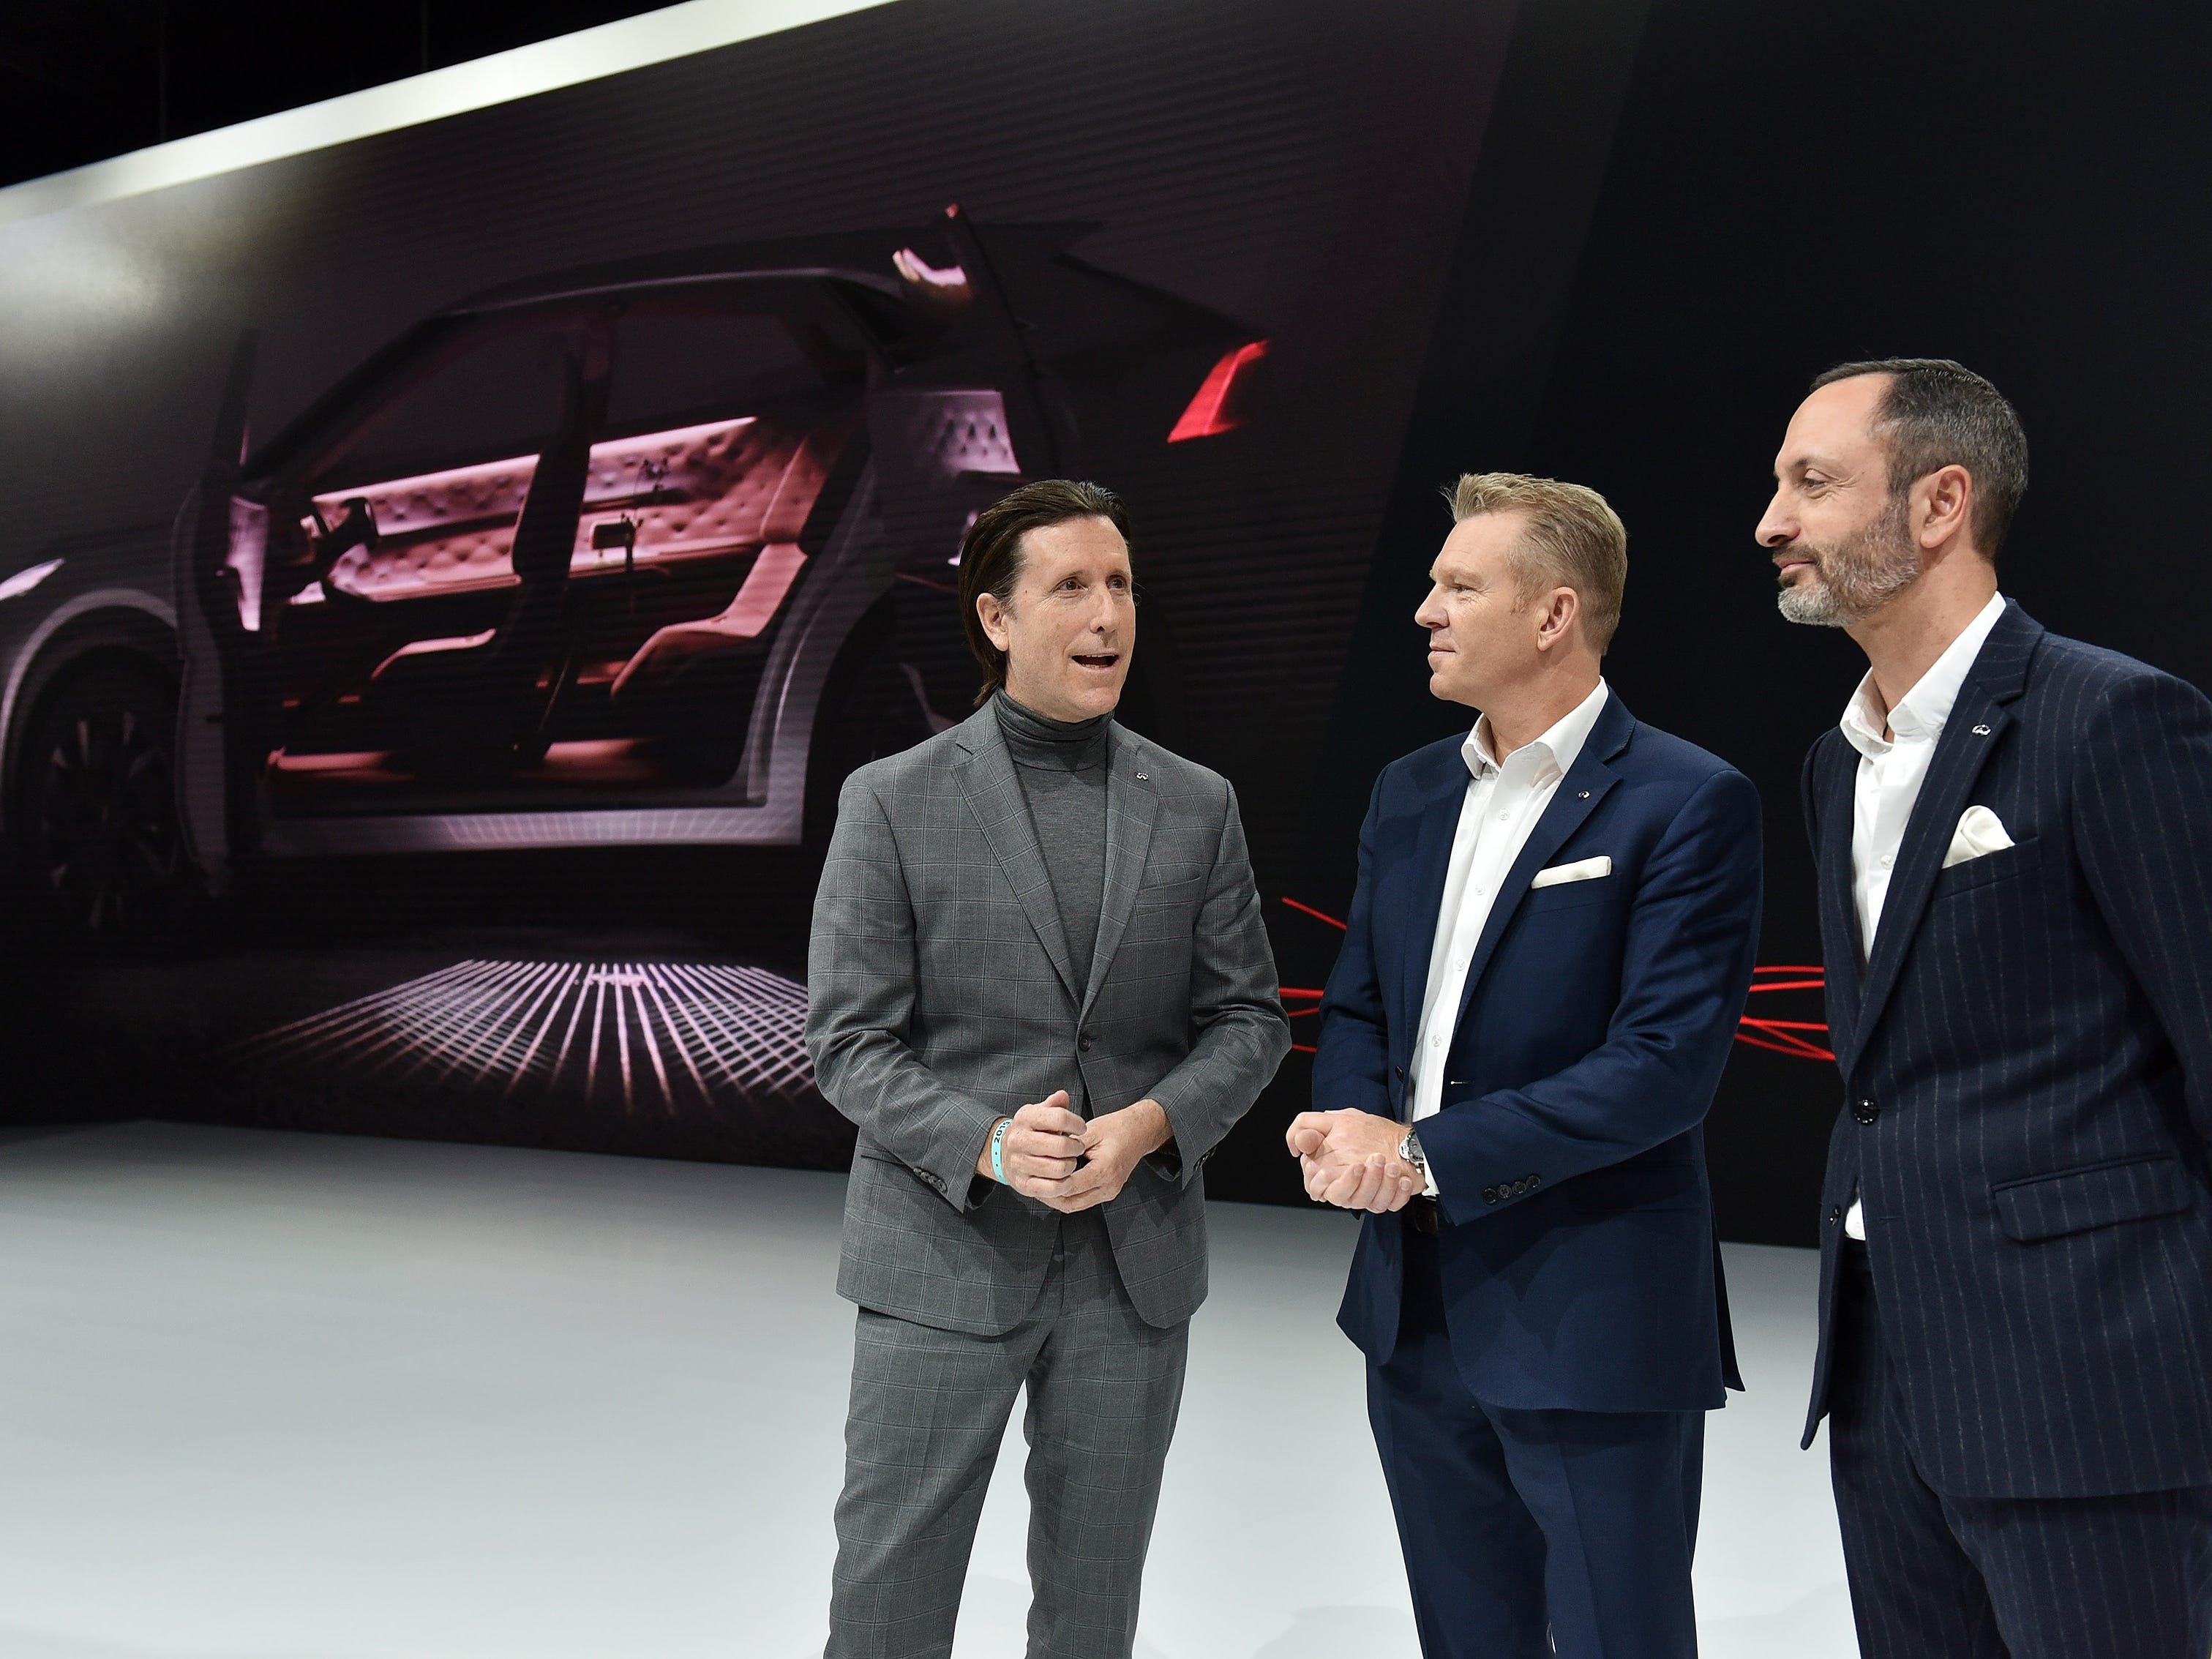 From left, Alfonso Albaisa, senior vice president of Global Design for Nissan Motor Co., Christian Meunier, chairman and president, Infiniti Motor Co., and Karim Habib, executive director of design, Inifiniti Motor Co., talk after their press event for the Infiniti QX Inspiration concept vehicle, which had technical issues and did not make it to the stage. The group took it all in stride and had the vehicle pushed onto the stage later Monday.